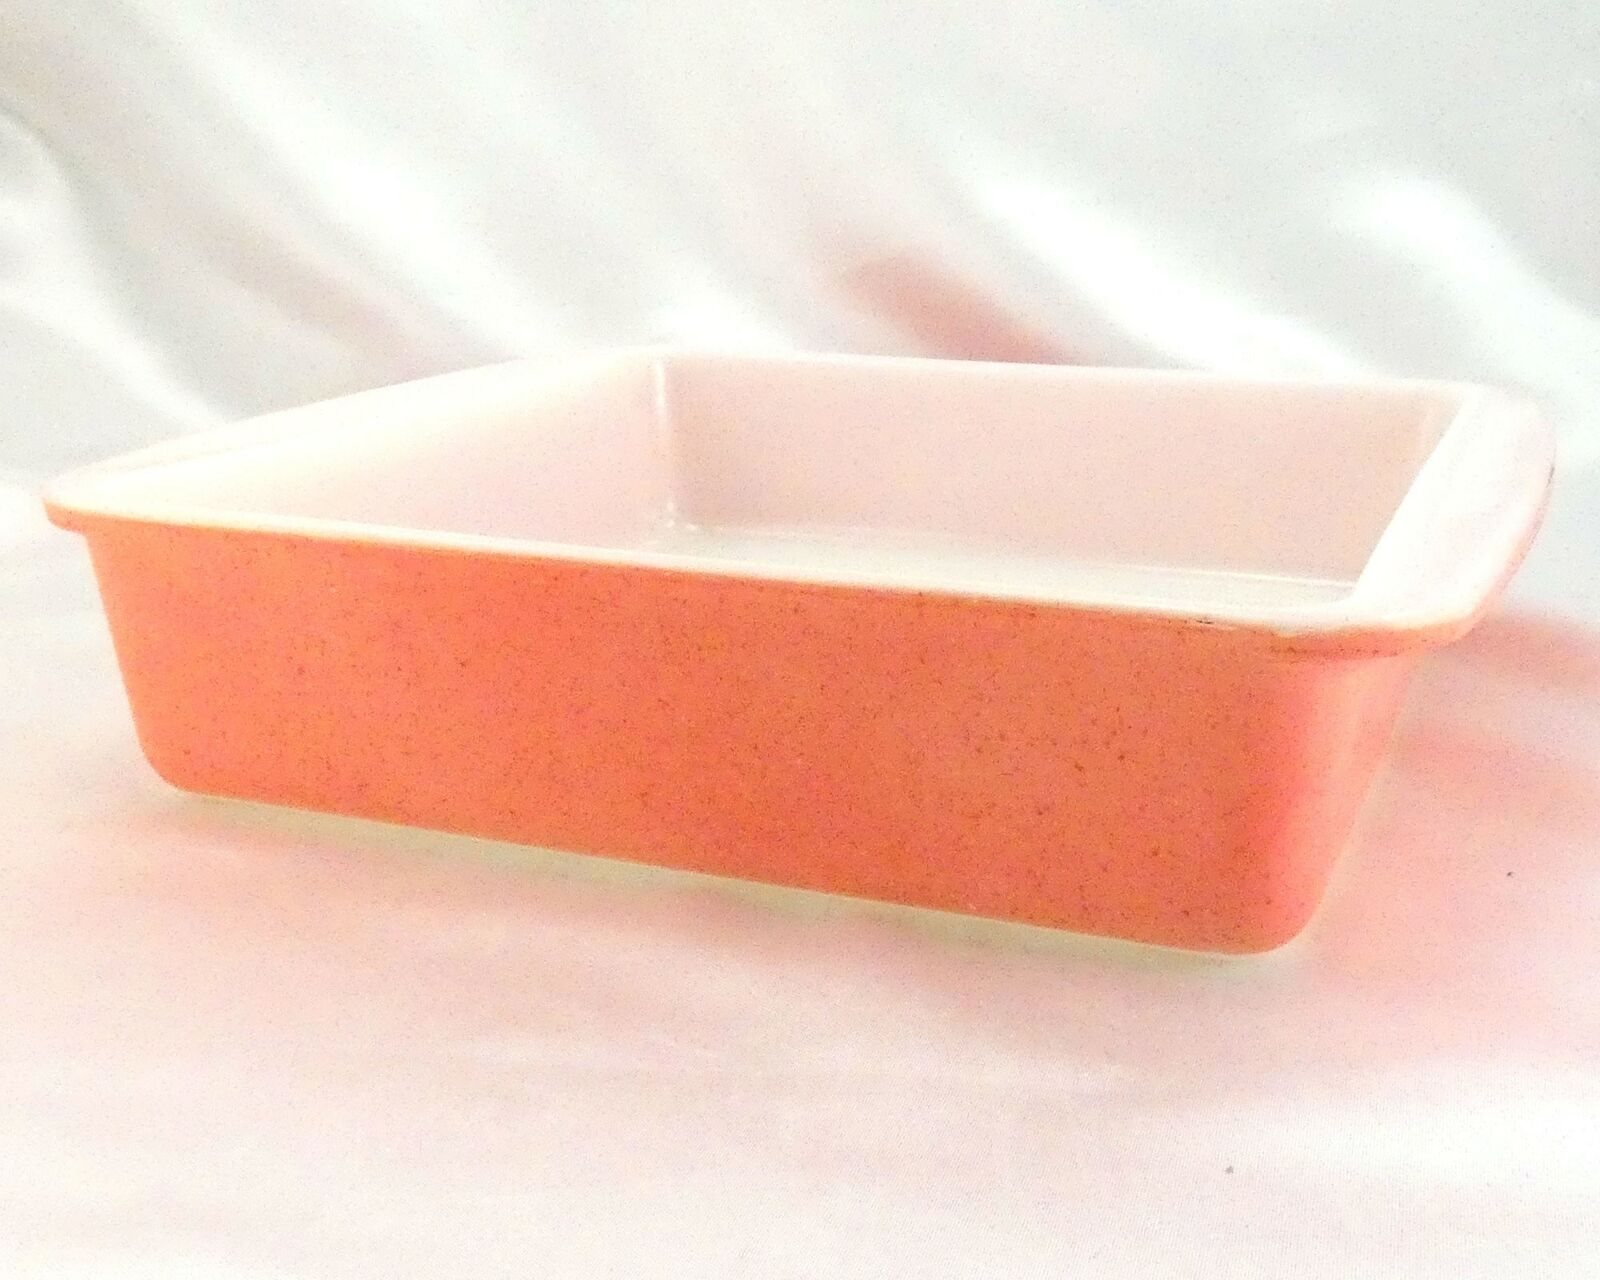 "Pyrex 222 Desert Dawn Square Baking Dish Vintage Speckled 8""x8"" Made in the USA"